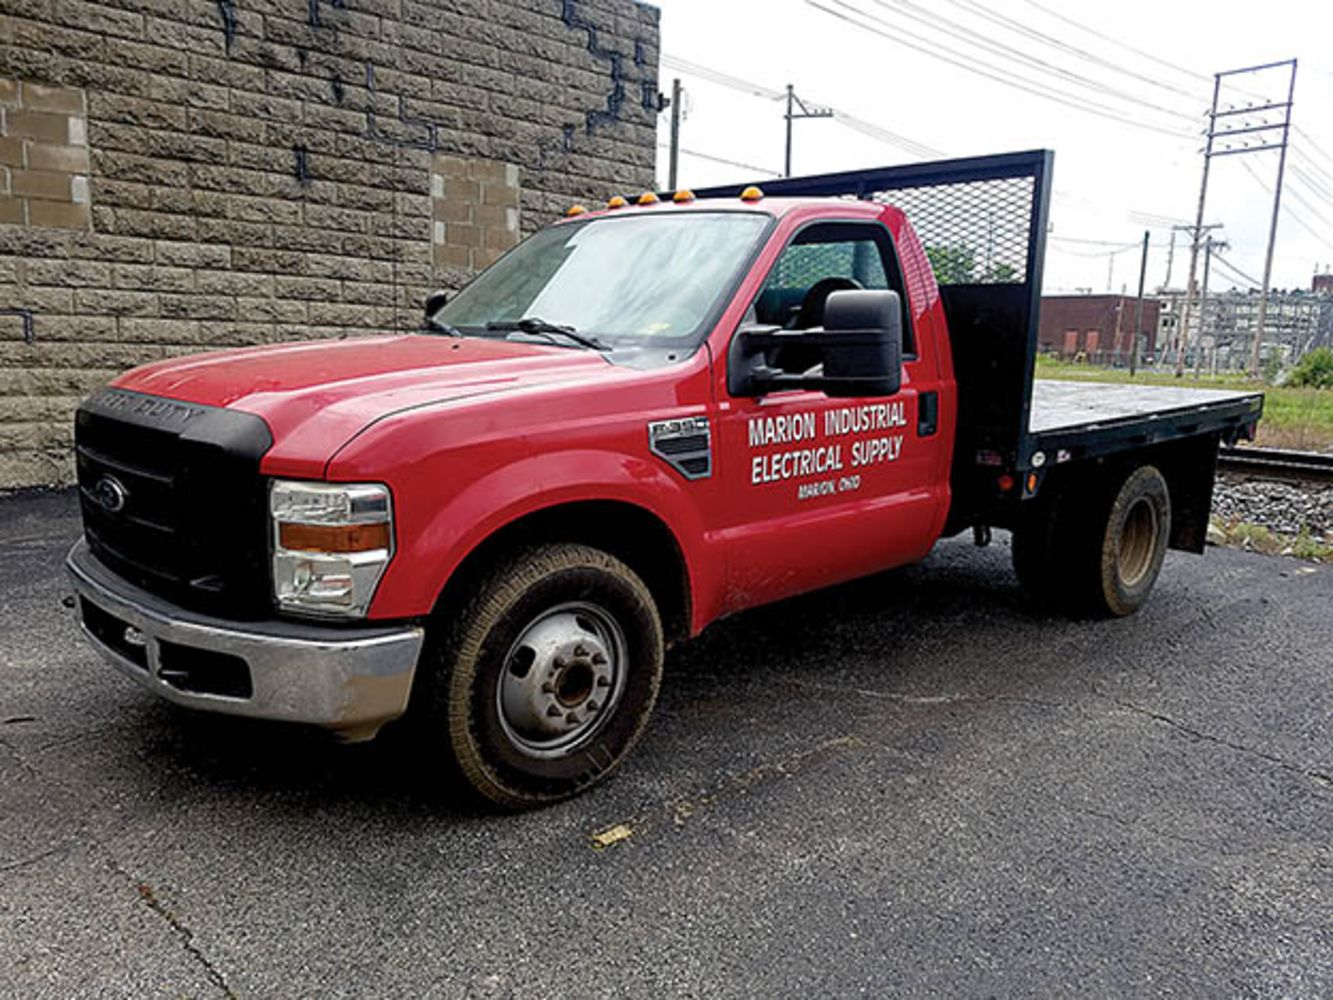 Marion Industrial Electric Supply  - Online Absolute Auction - Business Closed